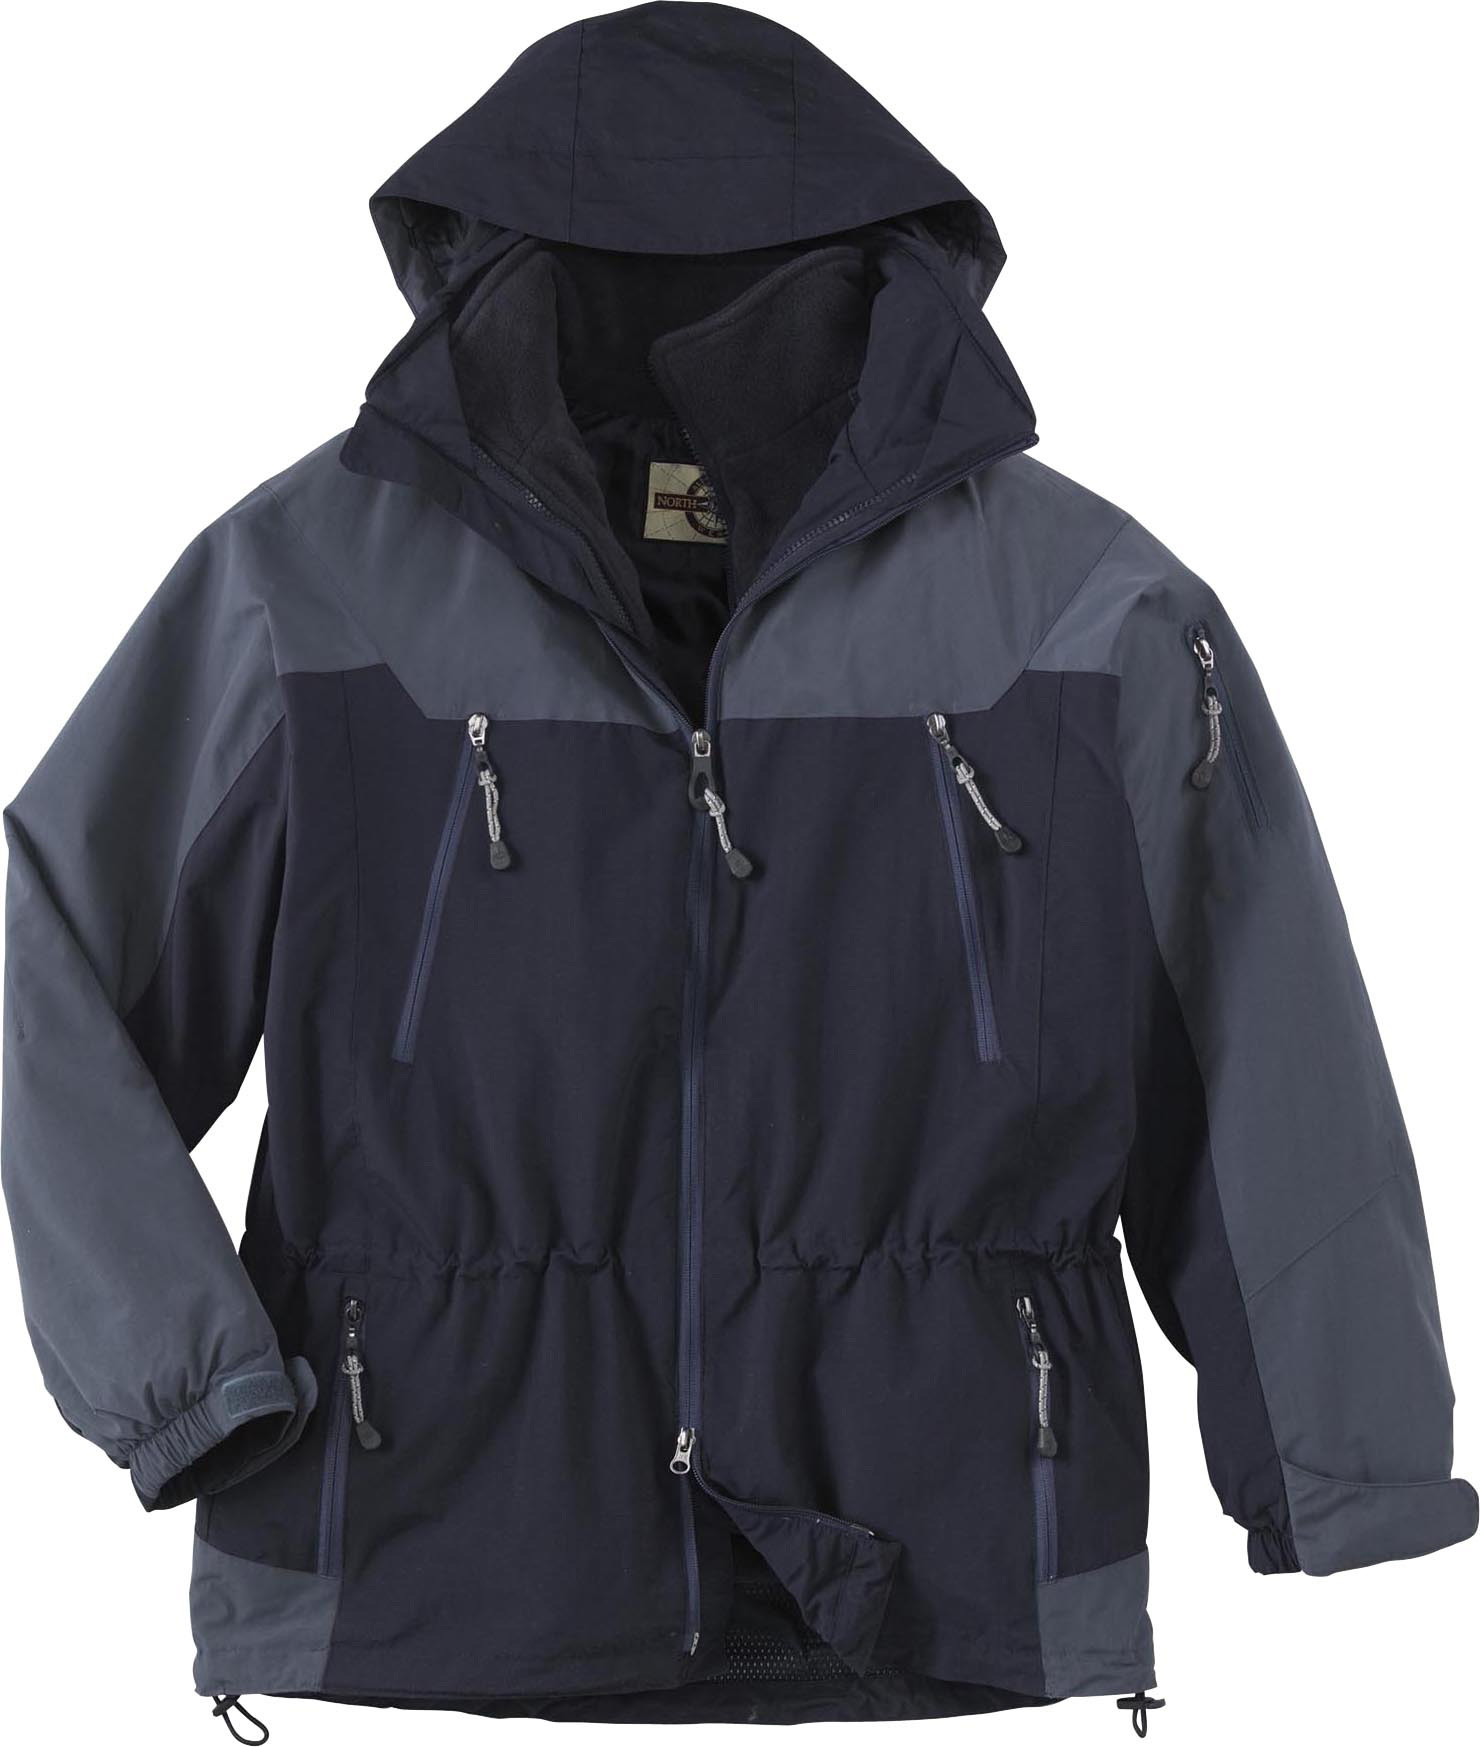 Ash City UTK 2 Warm.Logik 88107 - Men's 3-In-1 Parka